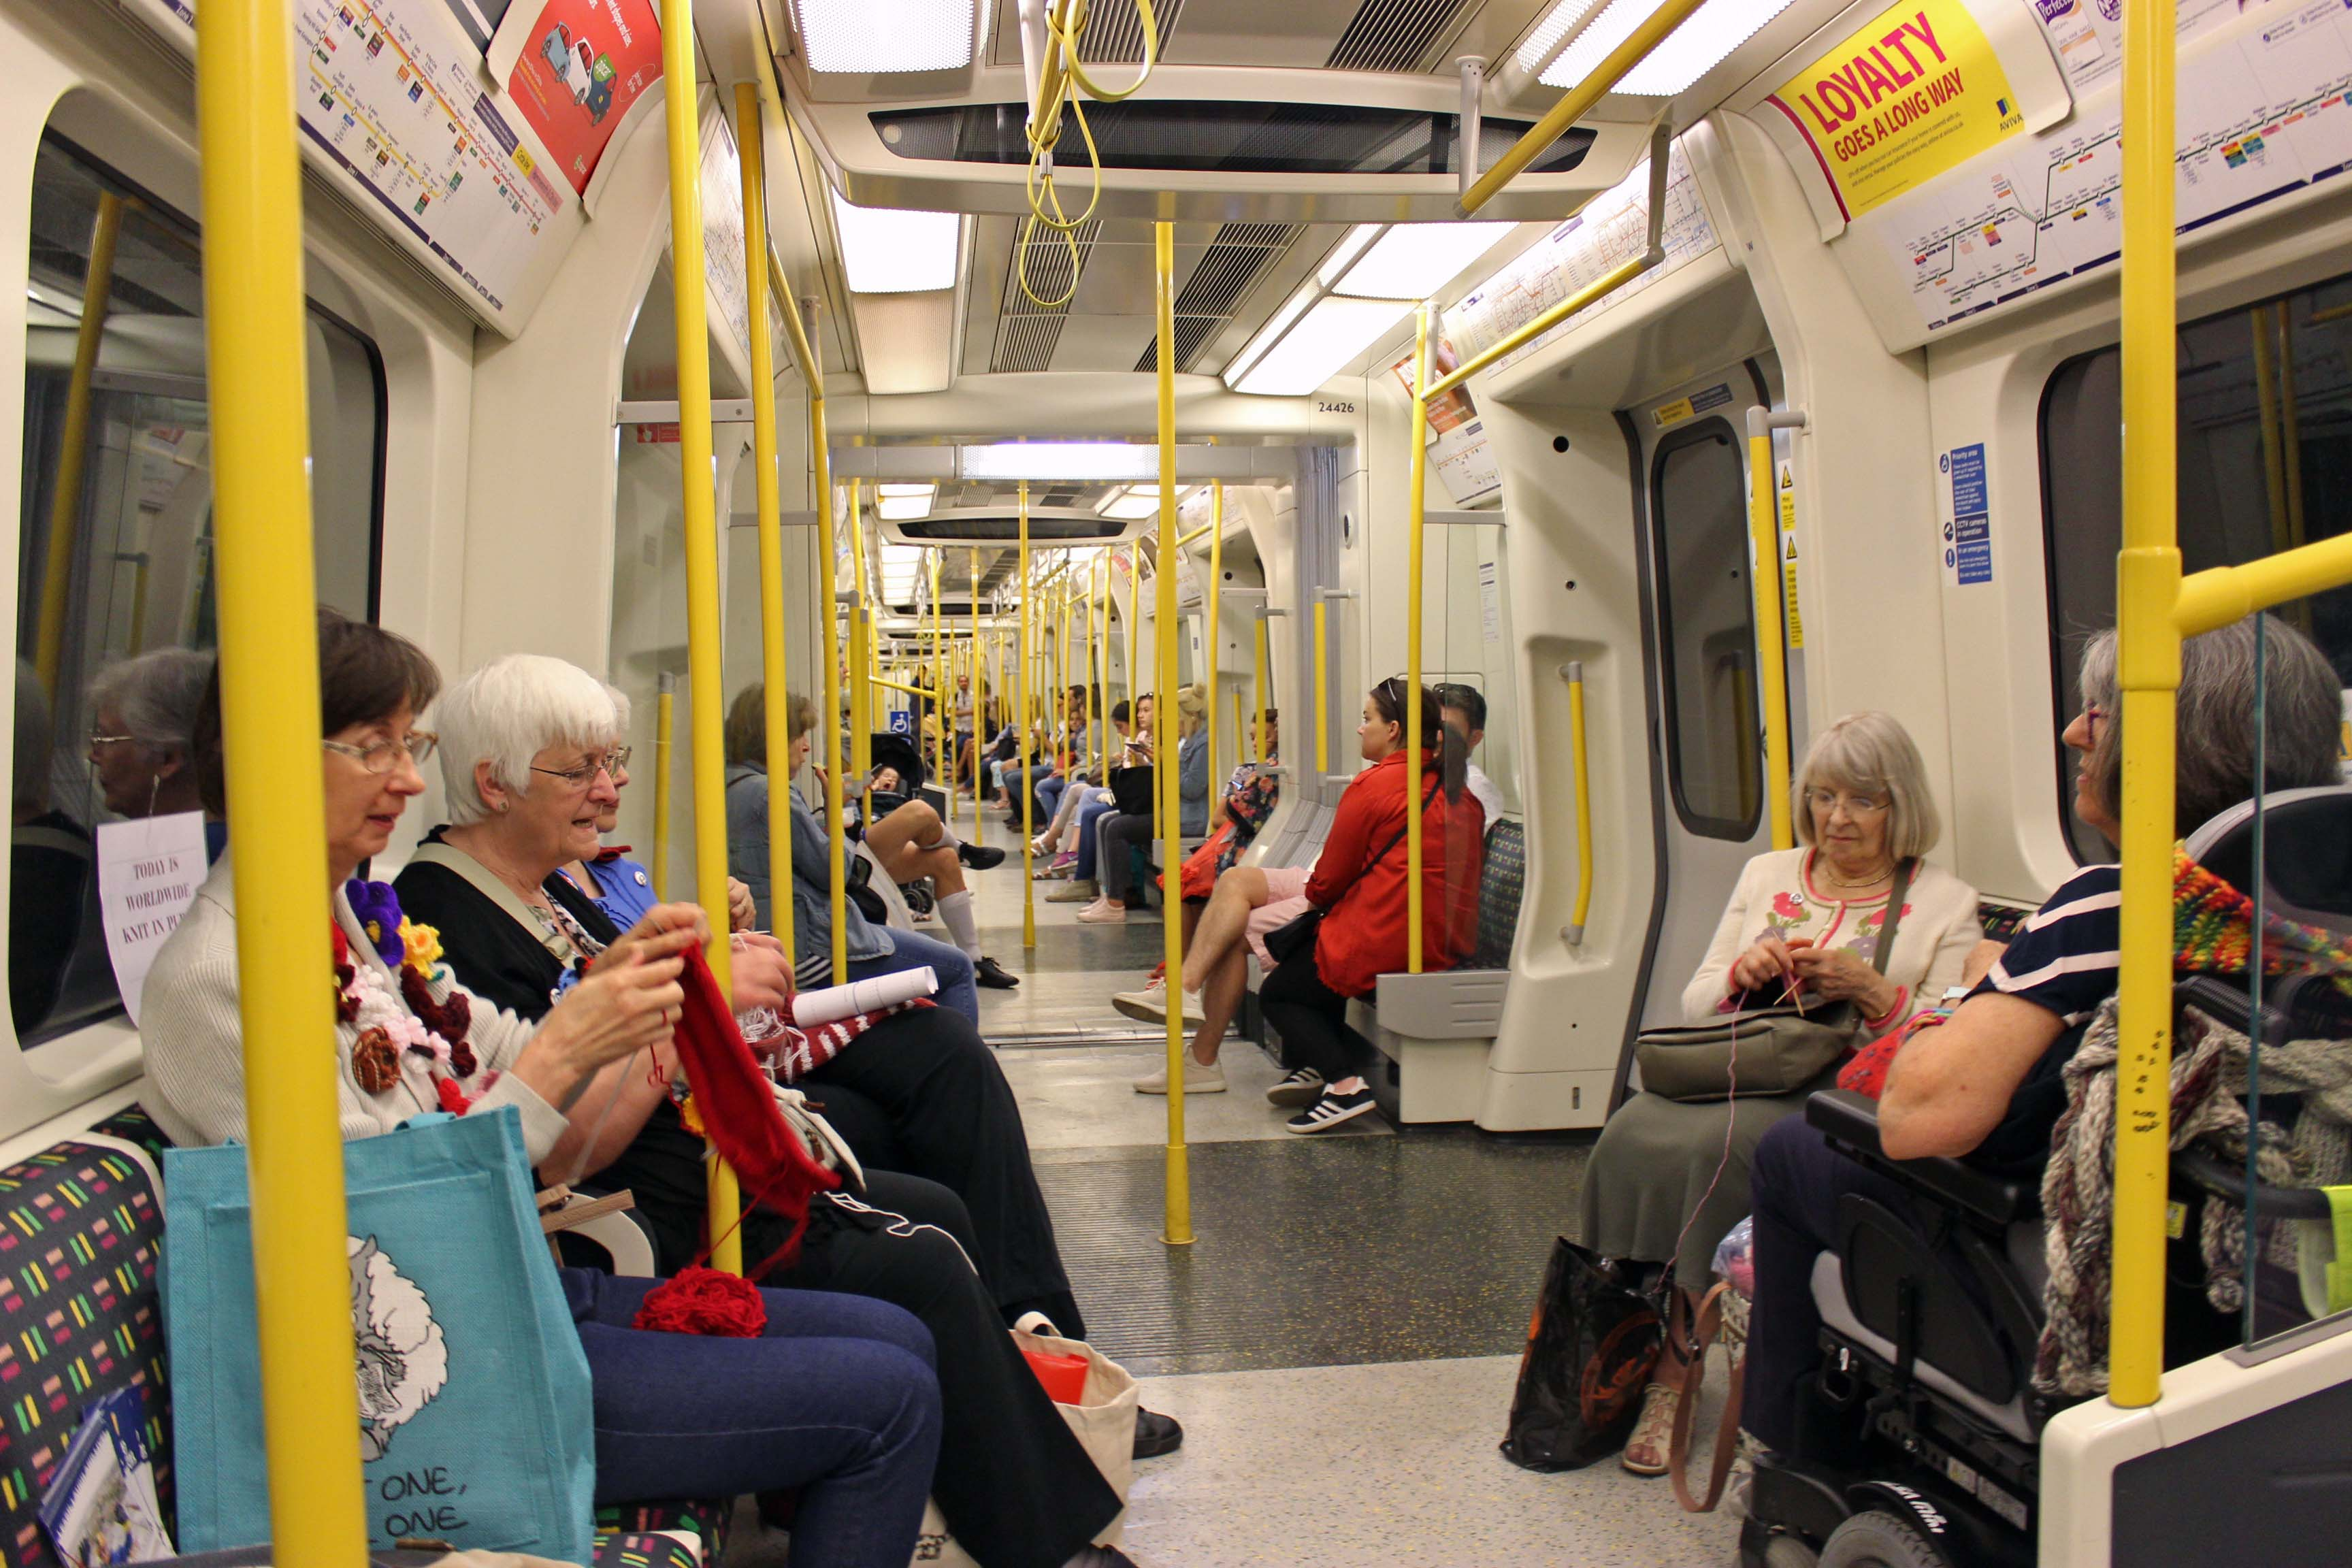 The crowded tube and quiet knitters